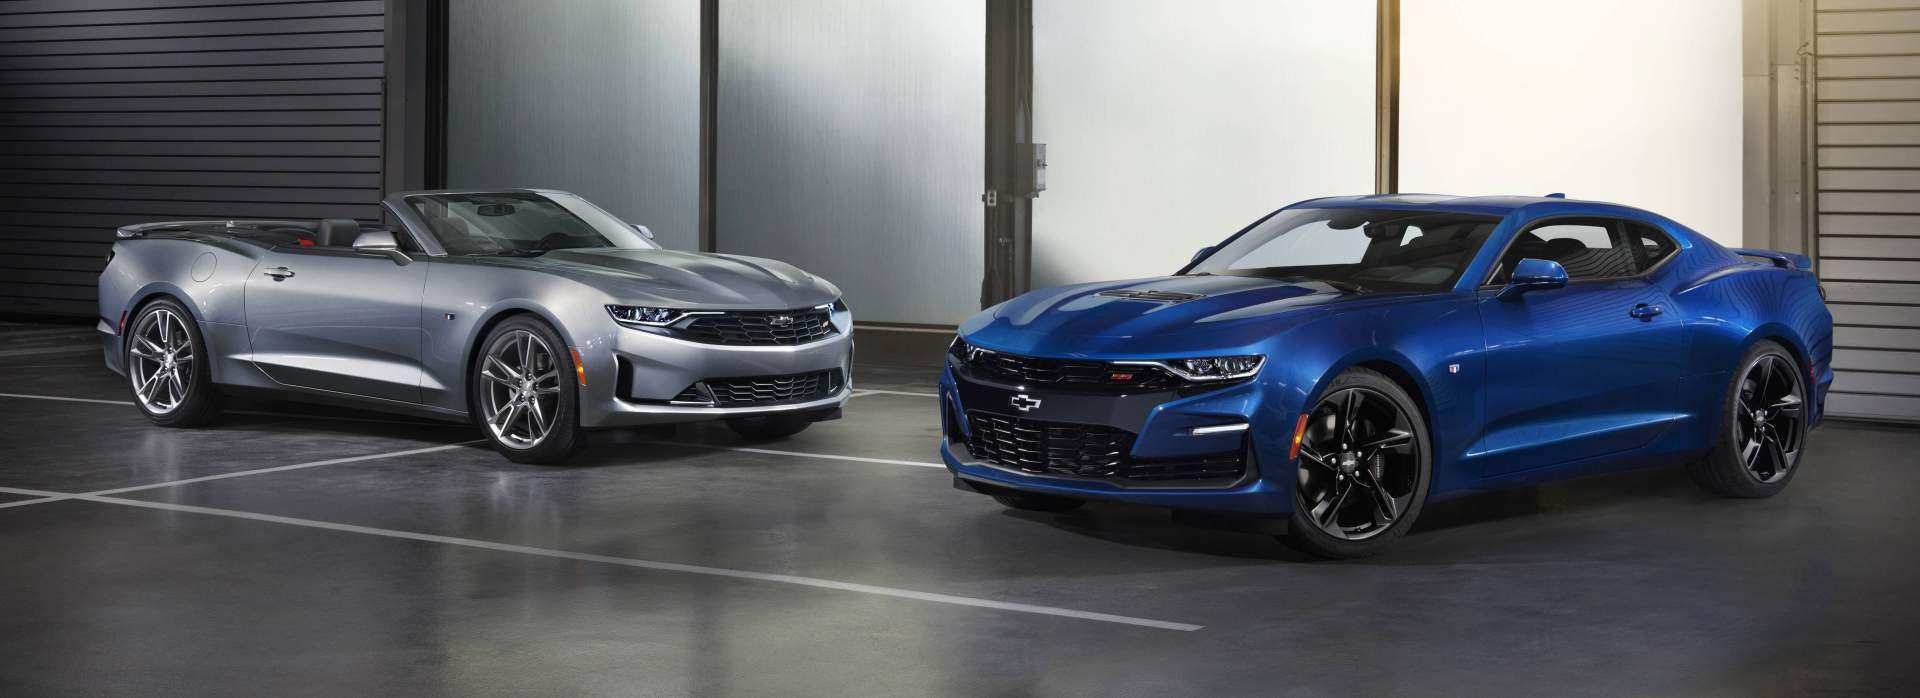 69 New 2020 Chevrolet Lineup First Drive for 2020 Chevrolet Lineup